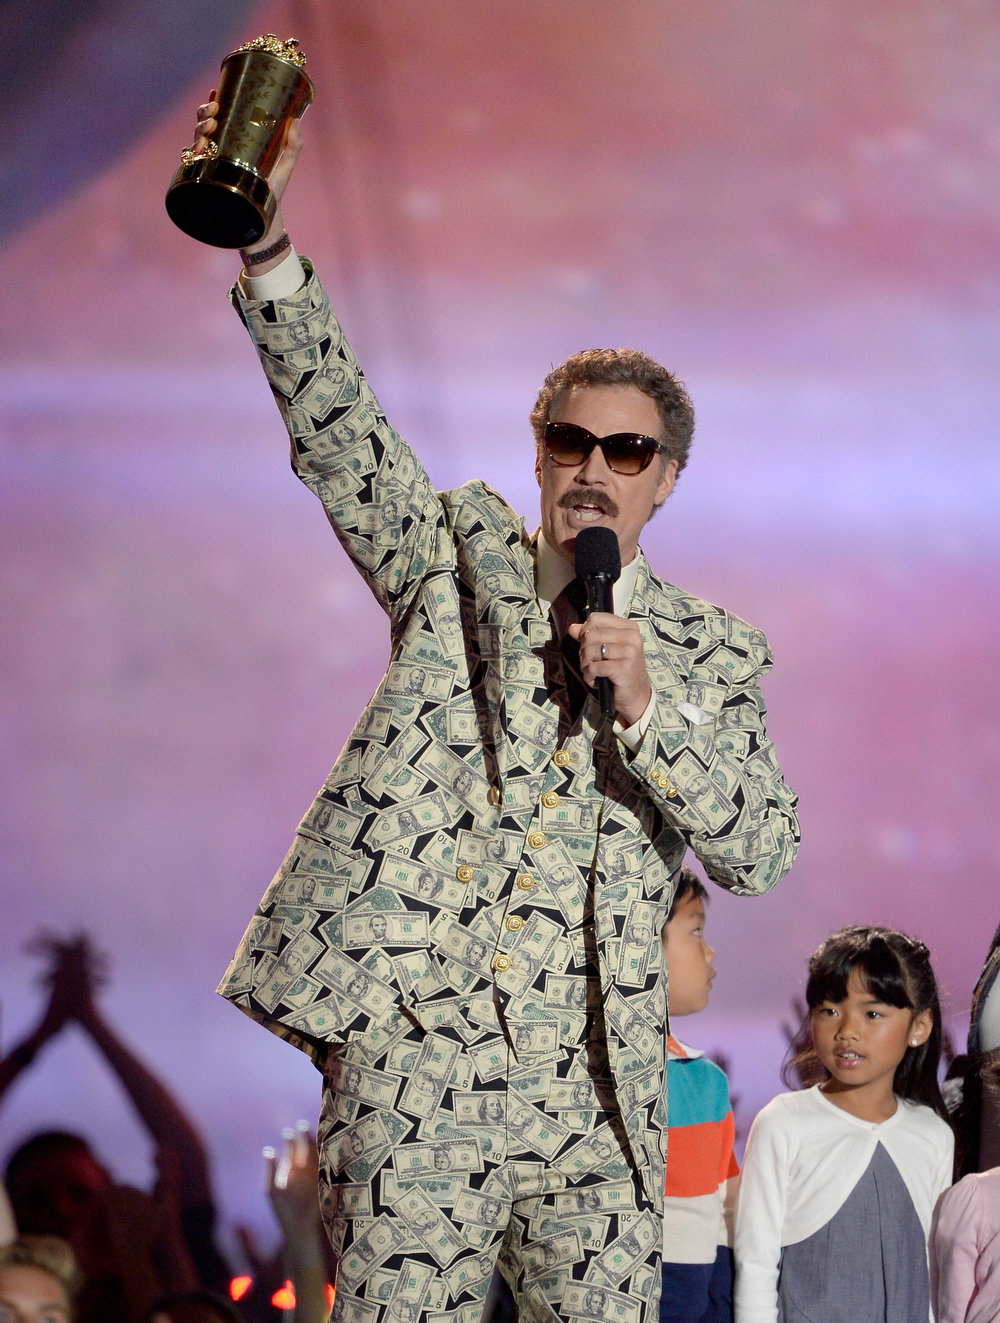 . Actor Will Ferrell accepts the Comedic Genius Award onstage during the 2013 MTV Movie Awards at Sony Pictures Studios on April 14, 2013 in Culver City, California.  (Photo by Kevork Djansezian/Getty Images)